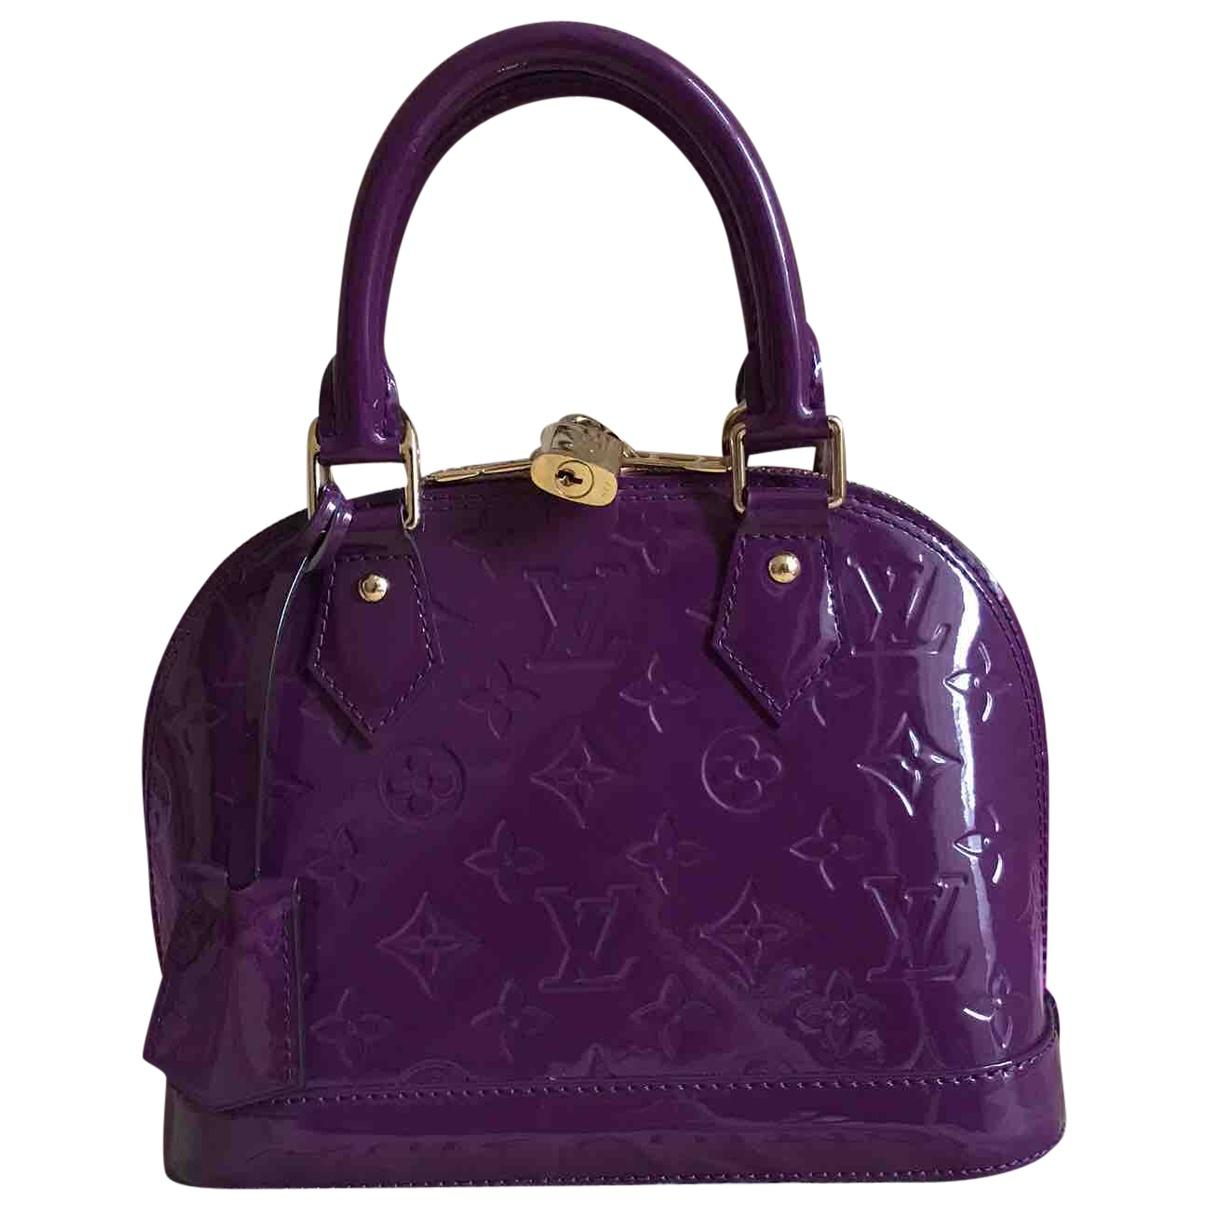 94a4f70da209 Louis Vuitton Alma Bb Purple Patent Leather Handbag in Purple - Lyst